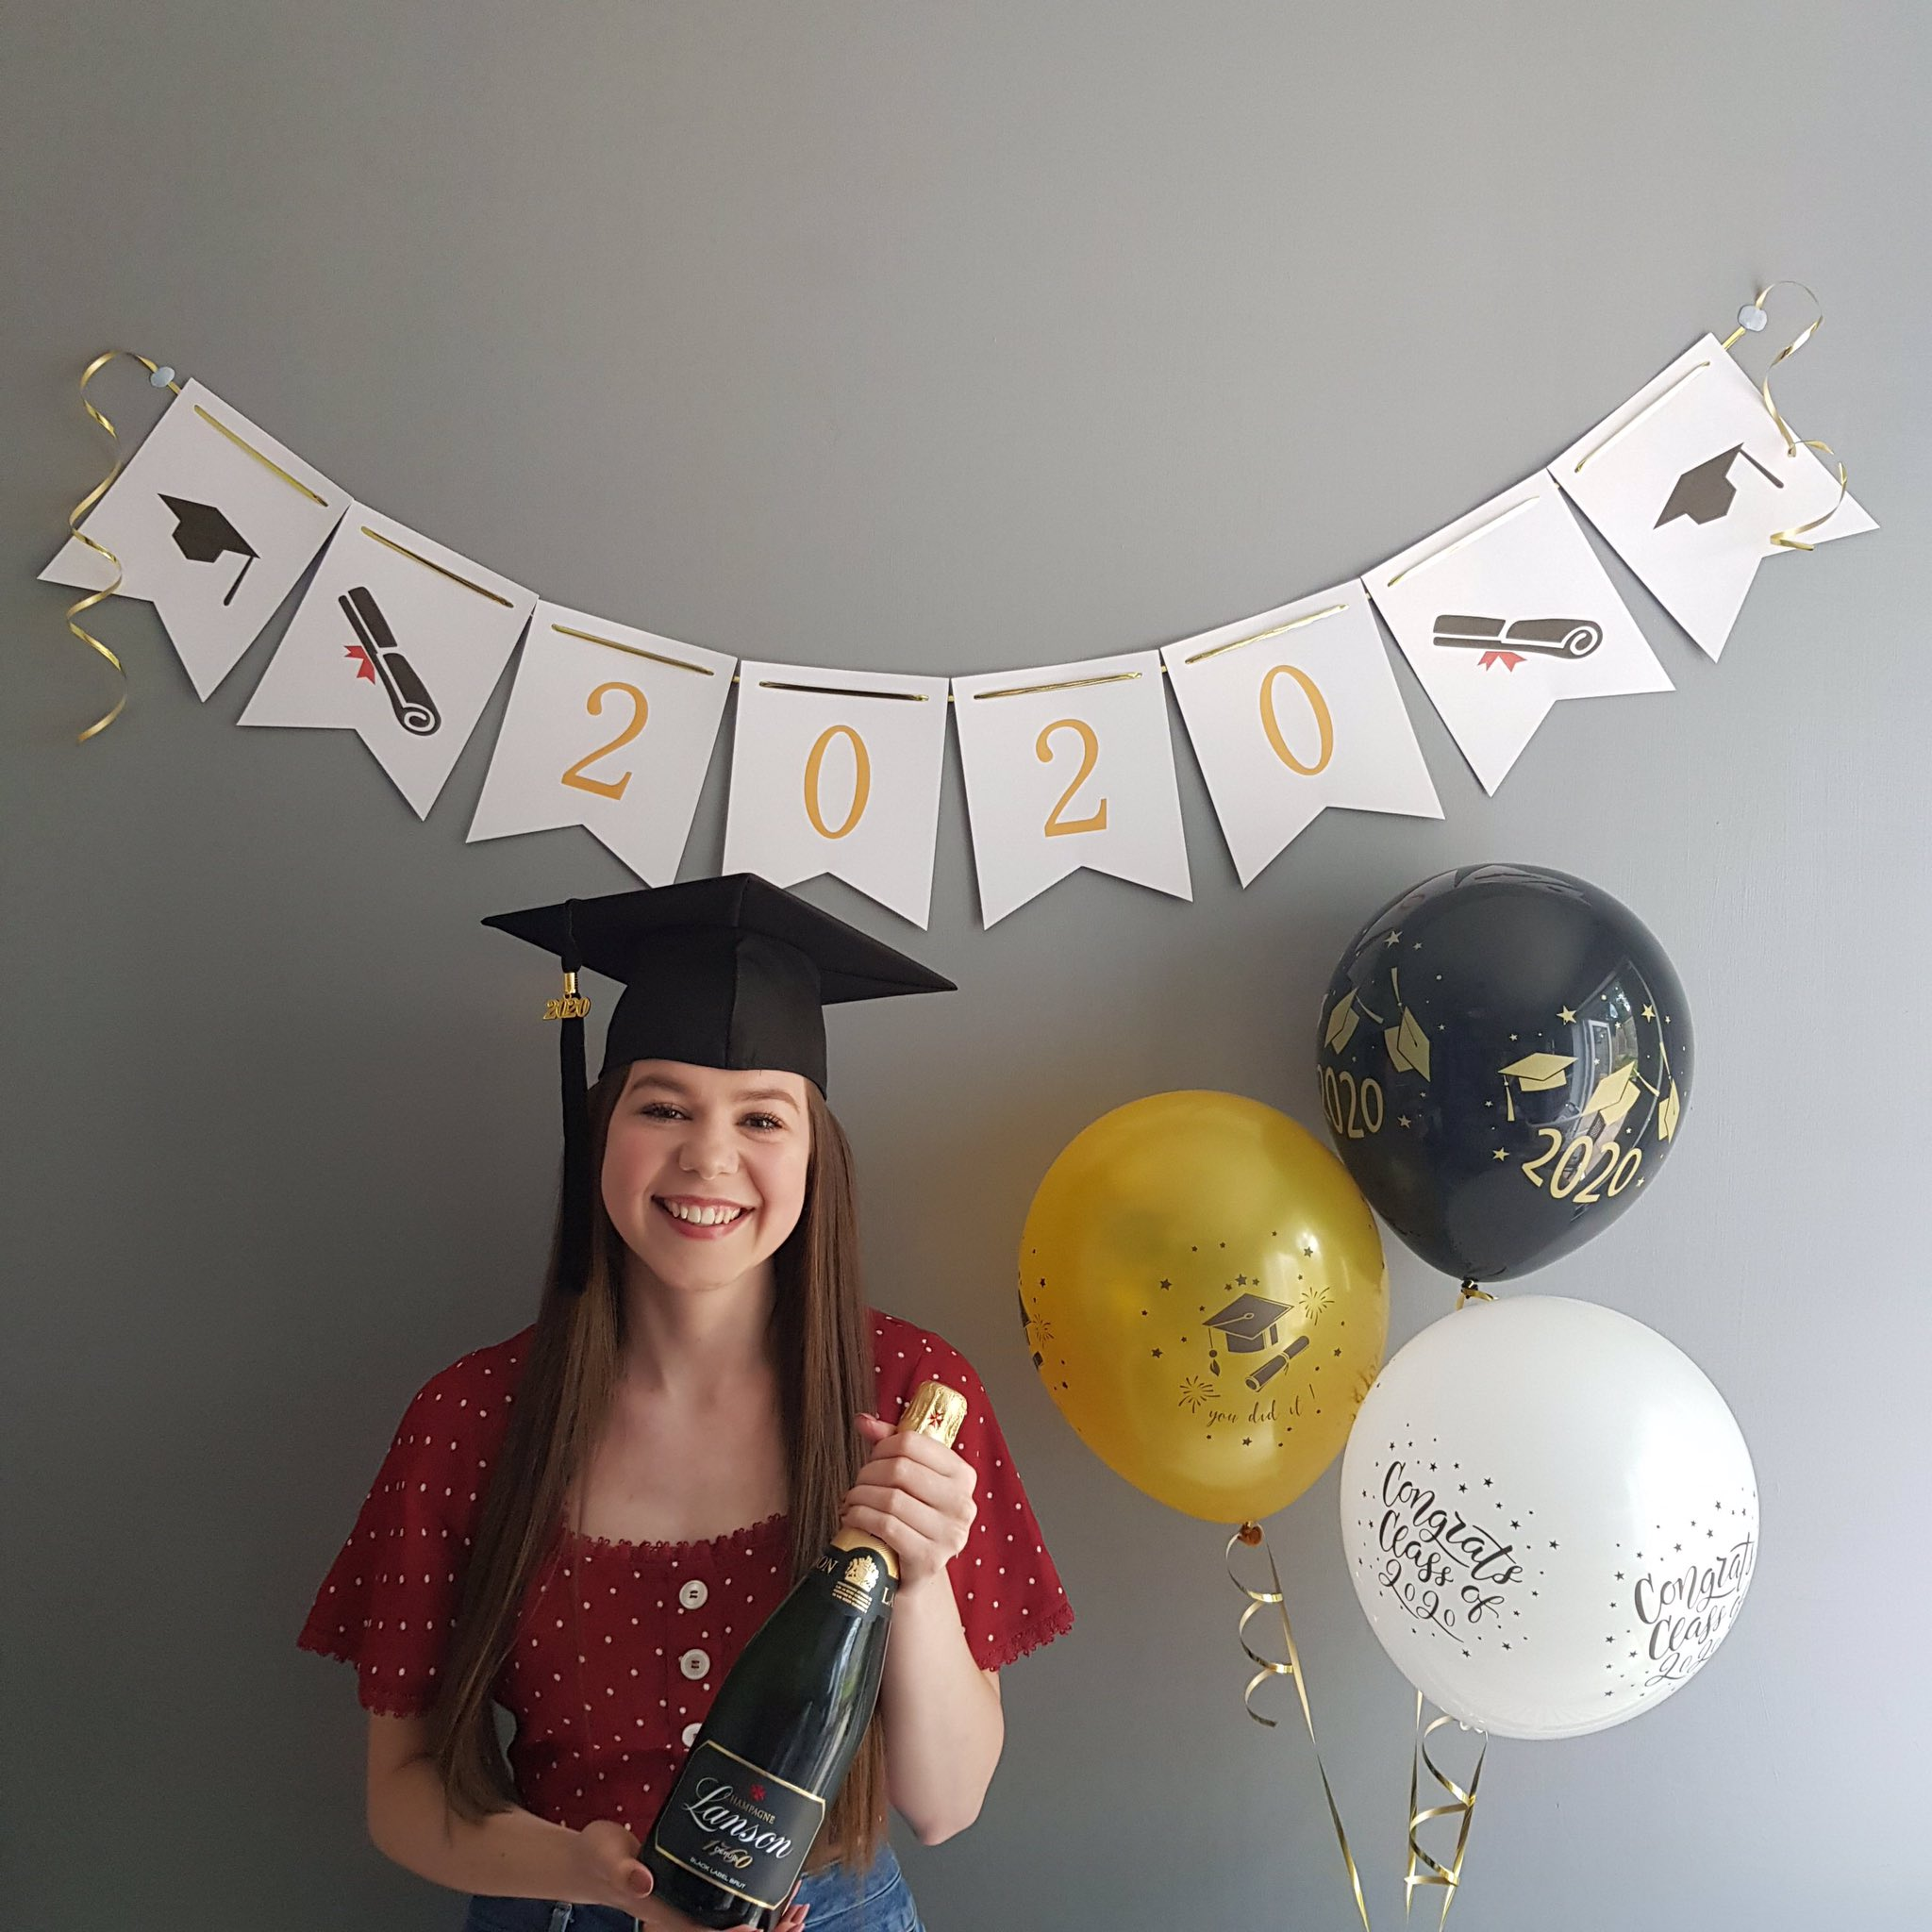 Girl smiling wearing graduation cap with champagne in hand, banner behind her that says 2020 and three balloons next to her